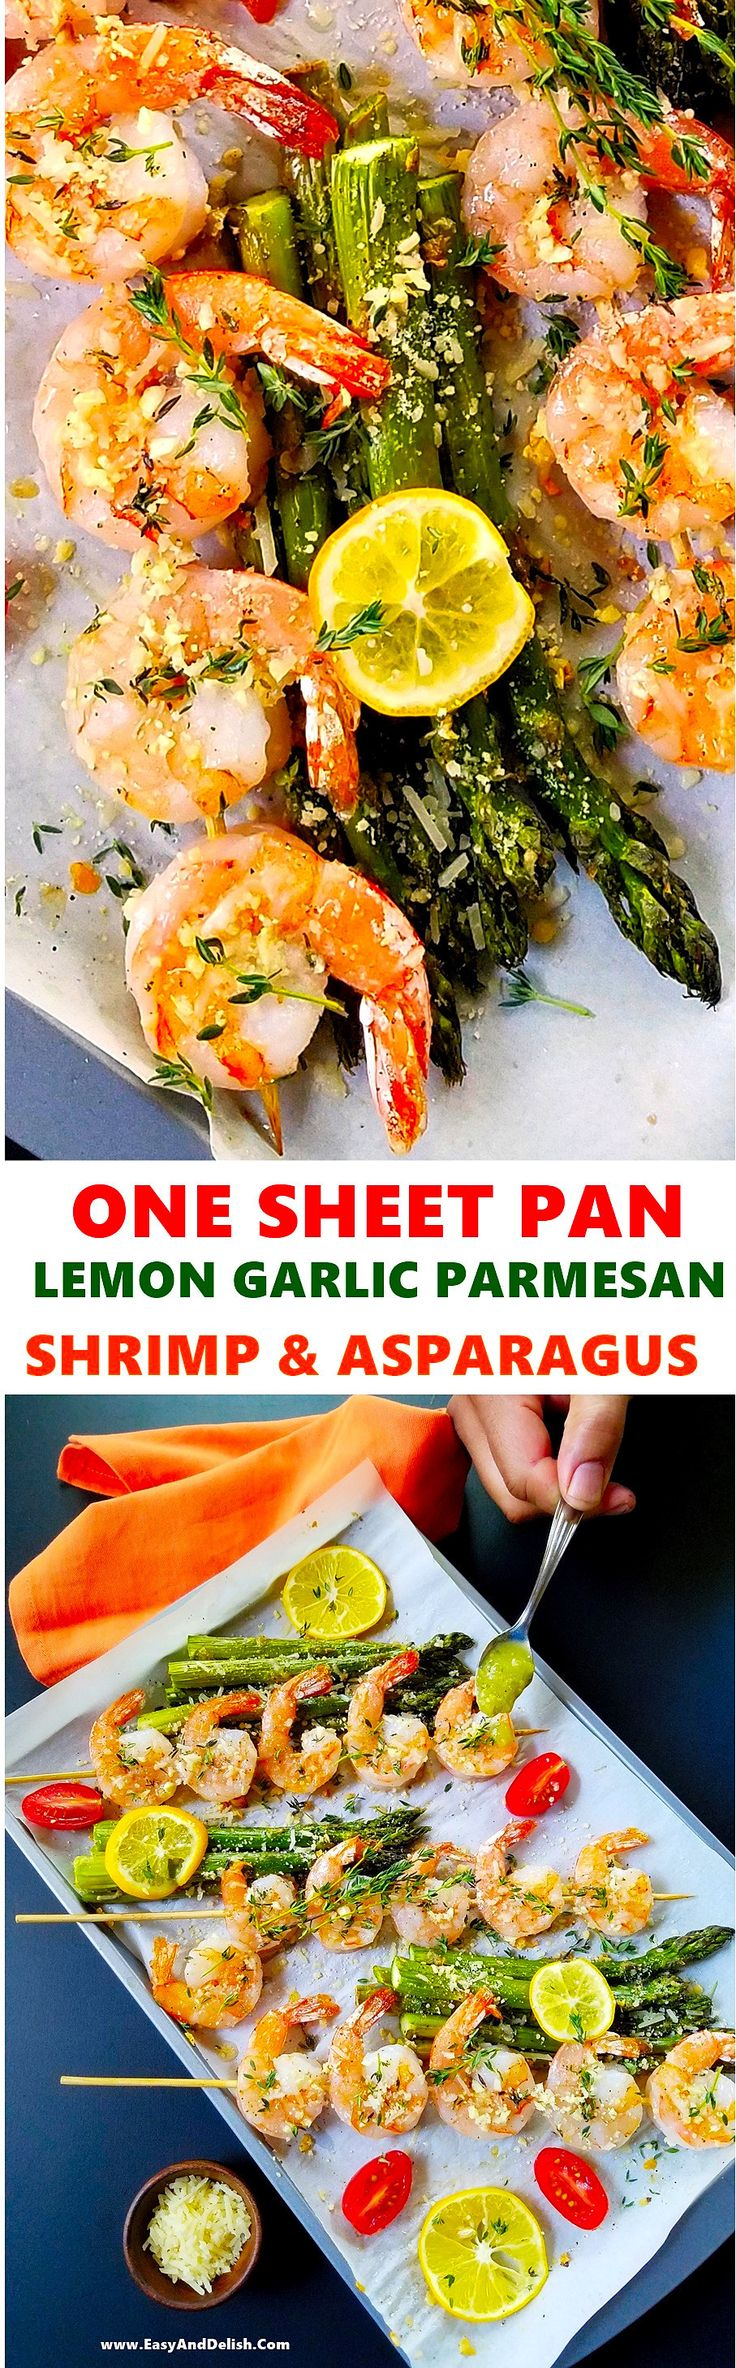 One sheet pan lemon garlic Parmesan shrimp and asparagus that can be prepared in less than 30 minutes. It is a no hassle, mess-free, elegant meal!